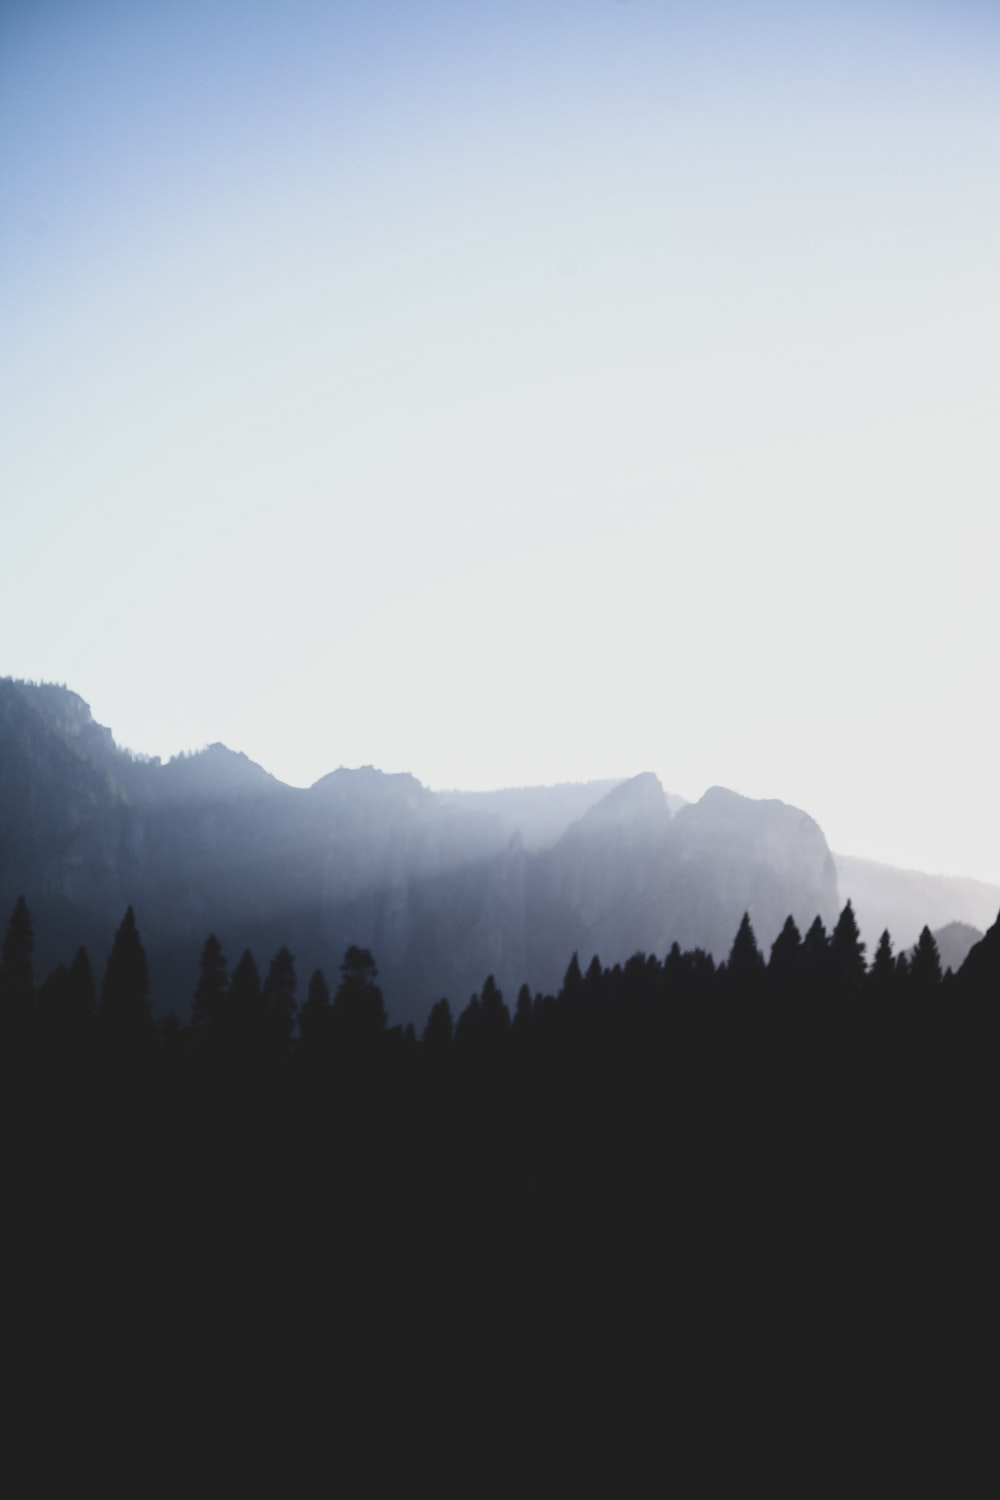 silhouette of trees on mountain during daytime